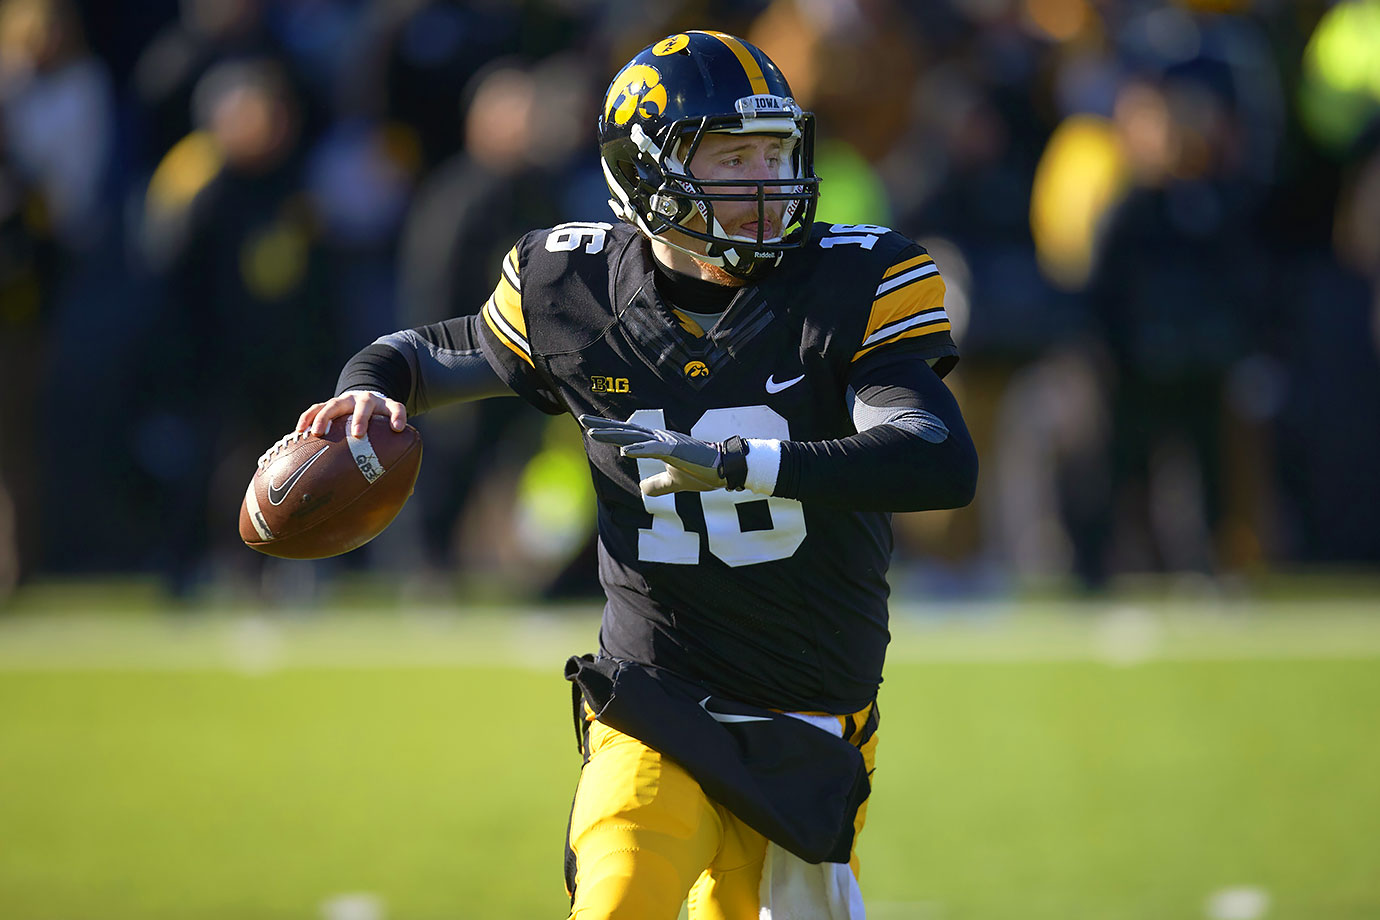 In his first full year as the starting quarterback, Beathard led Iowa to a 12–2 record, including appearances in both the Big Ten title game and the Rose Bowl. He threw for 2,570 yards and 15 touchdowns.